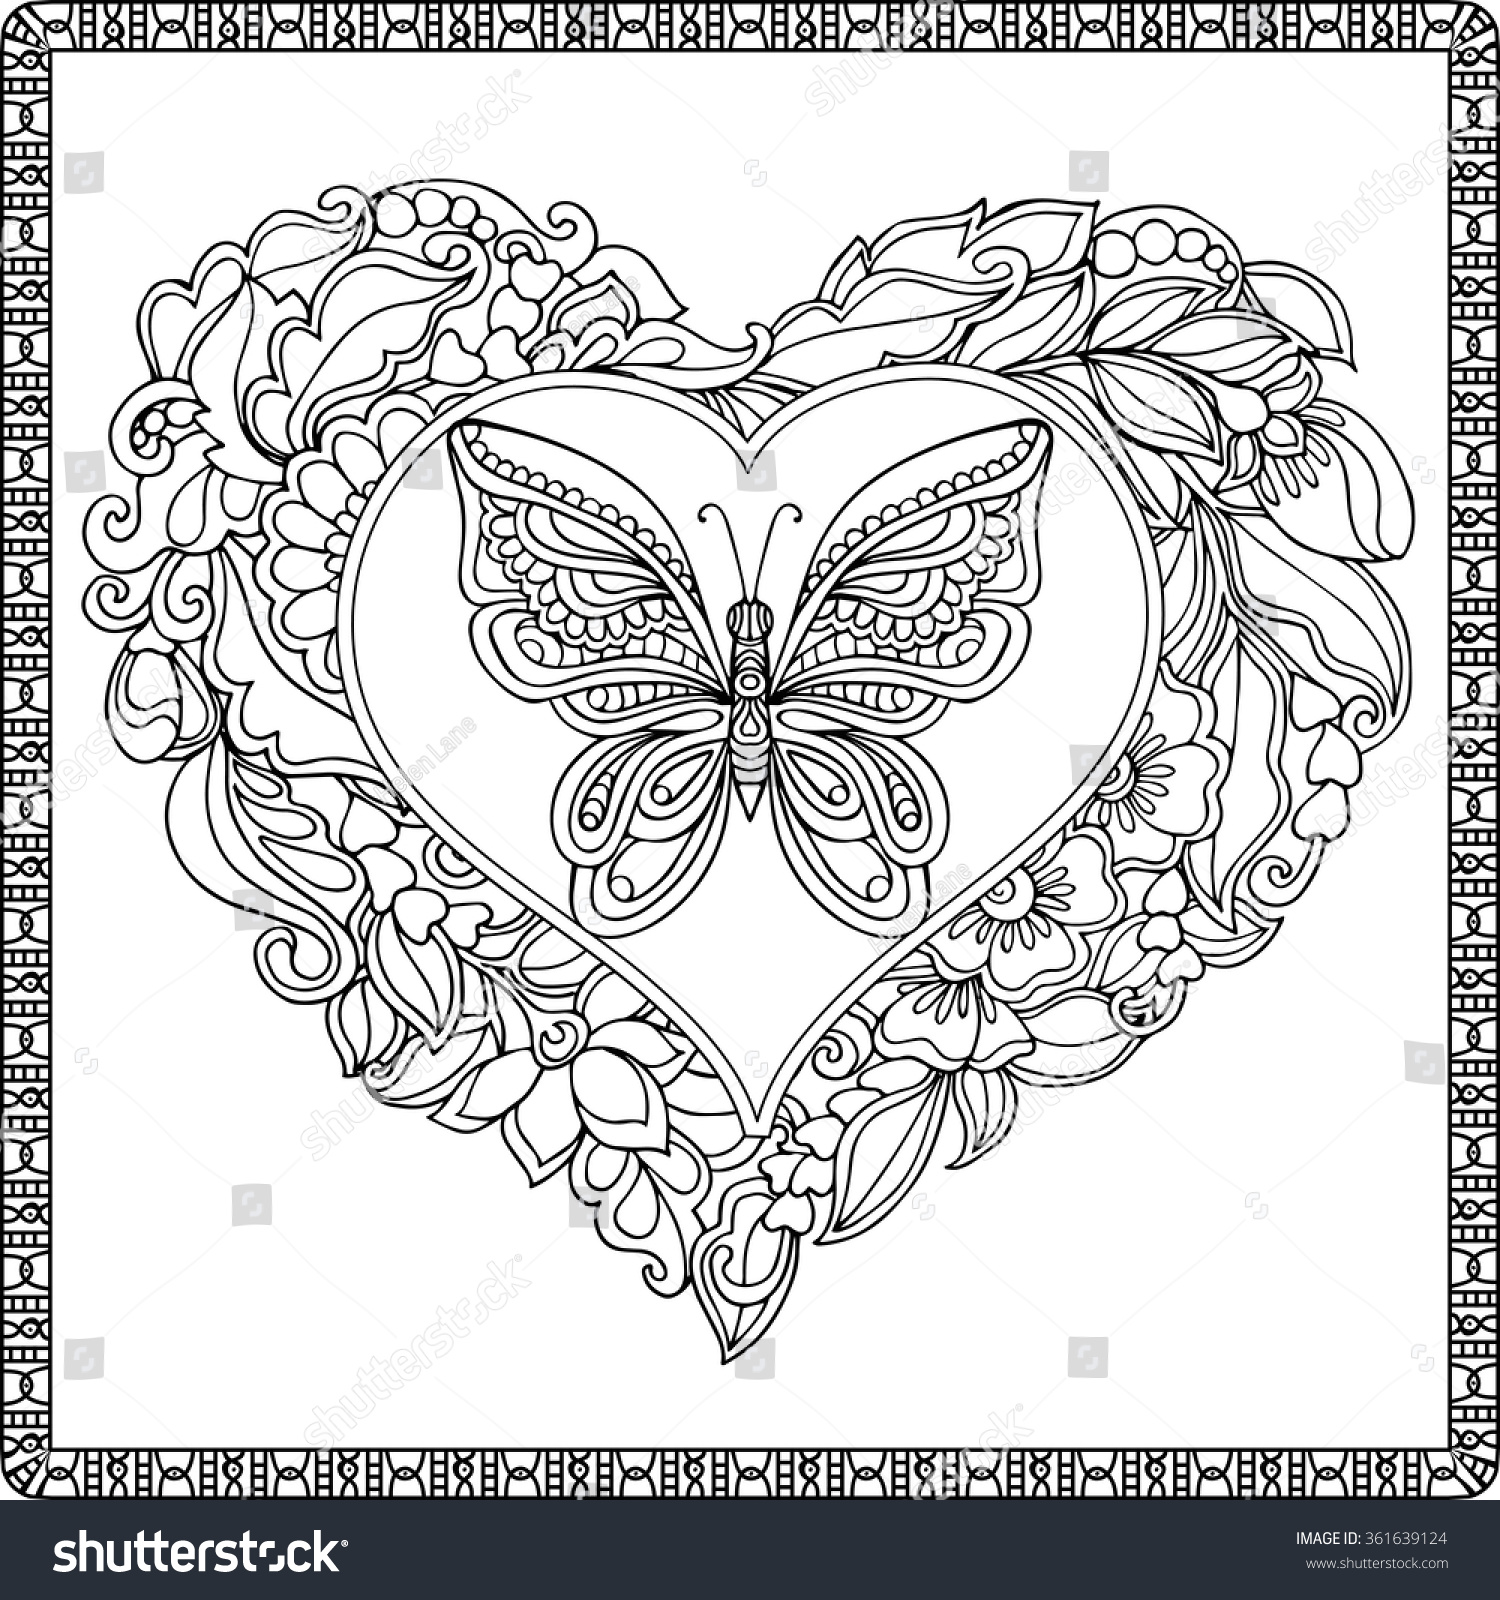 Love Heart With Butterfly Coloring Book For Adult And